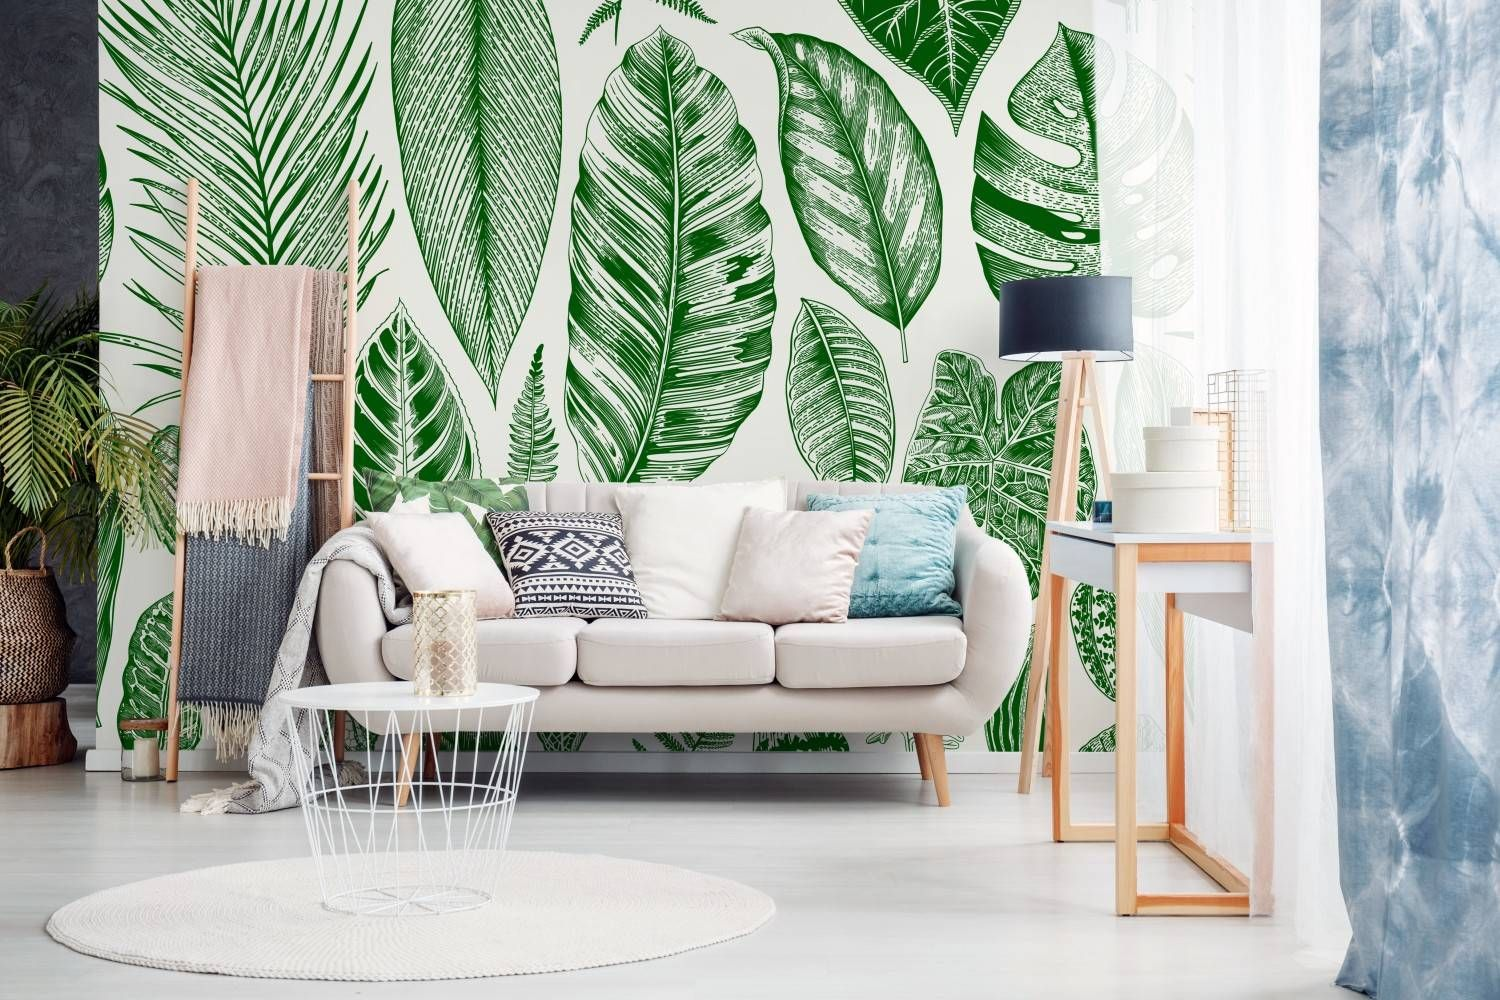 All about leaves • Scandinavian - Living room - Nature - Flowers and plants - Wall Murals ✓ 365 Day Money Back Guarantee ✓ Consulting on the Pattern Selection ✓ 100% Safe✓ Set up online!